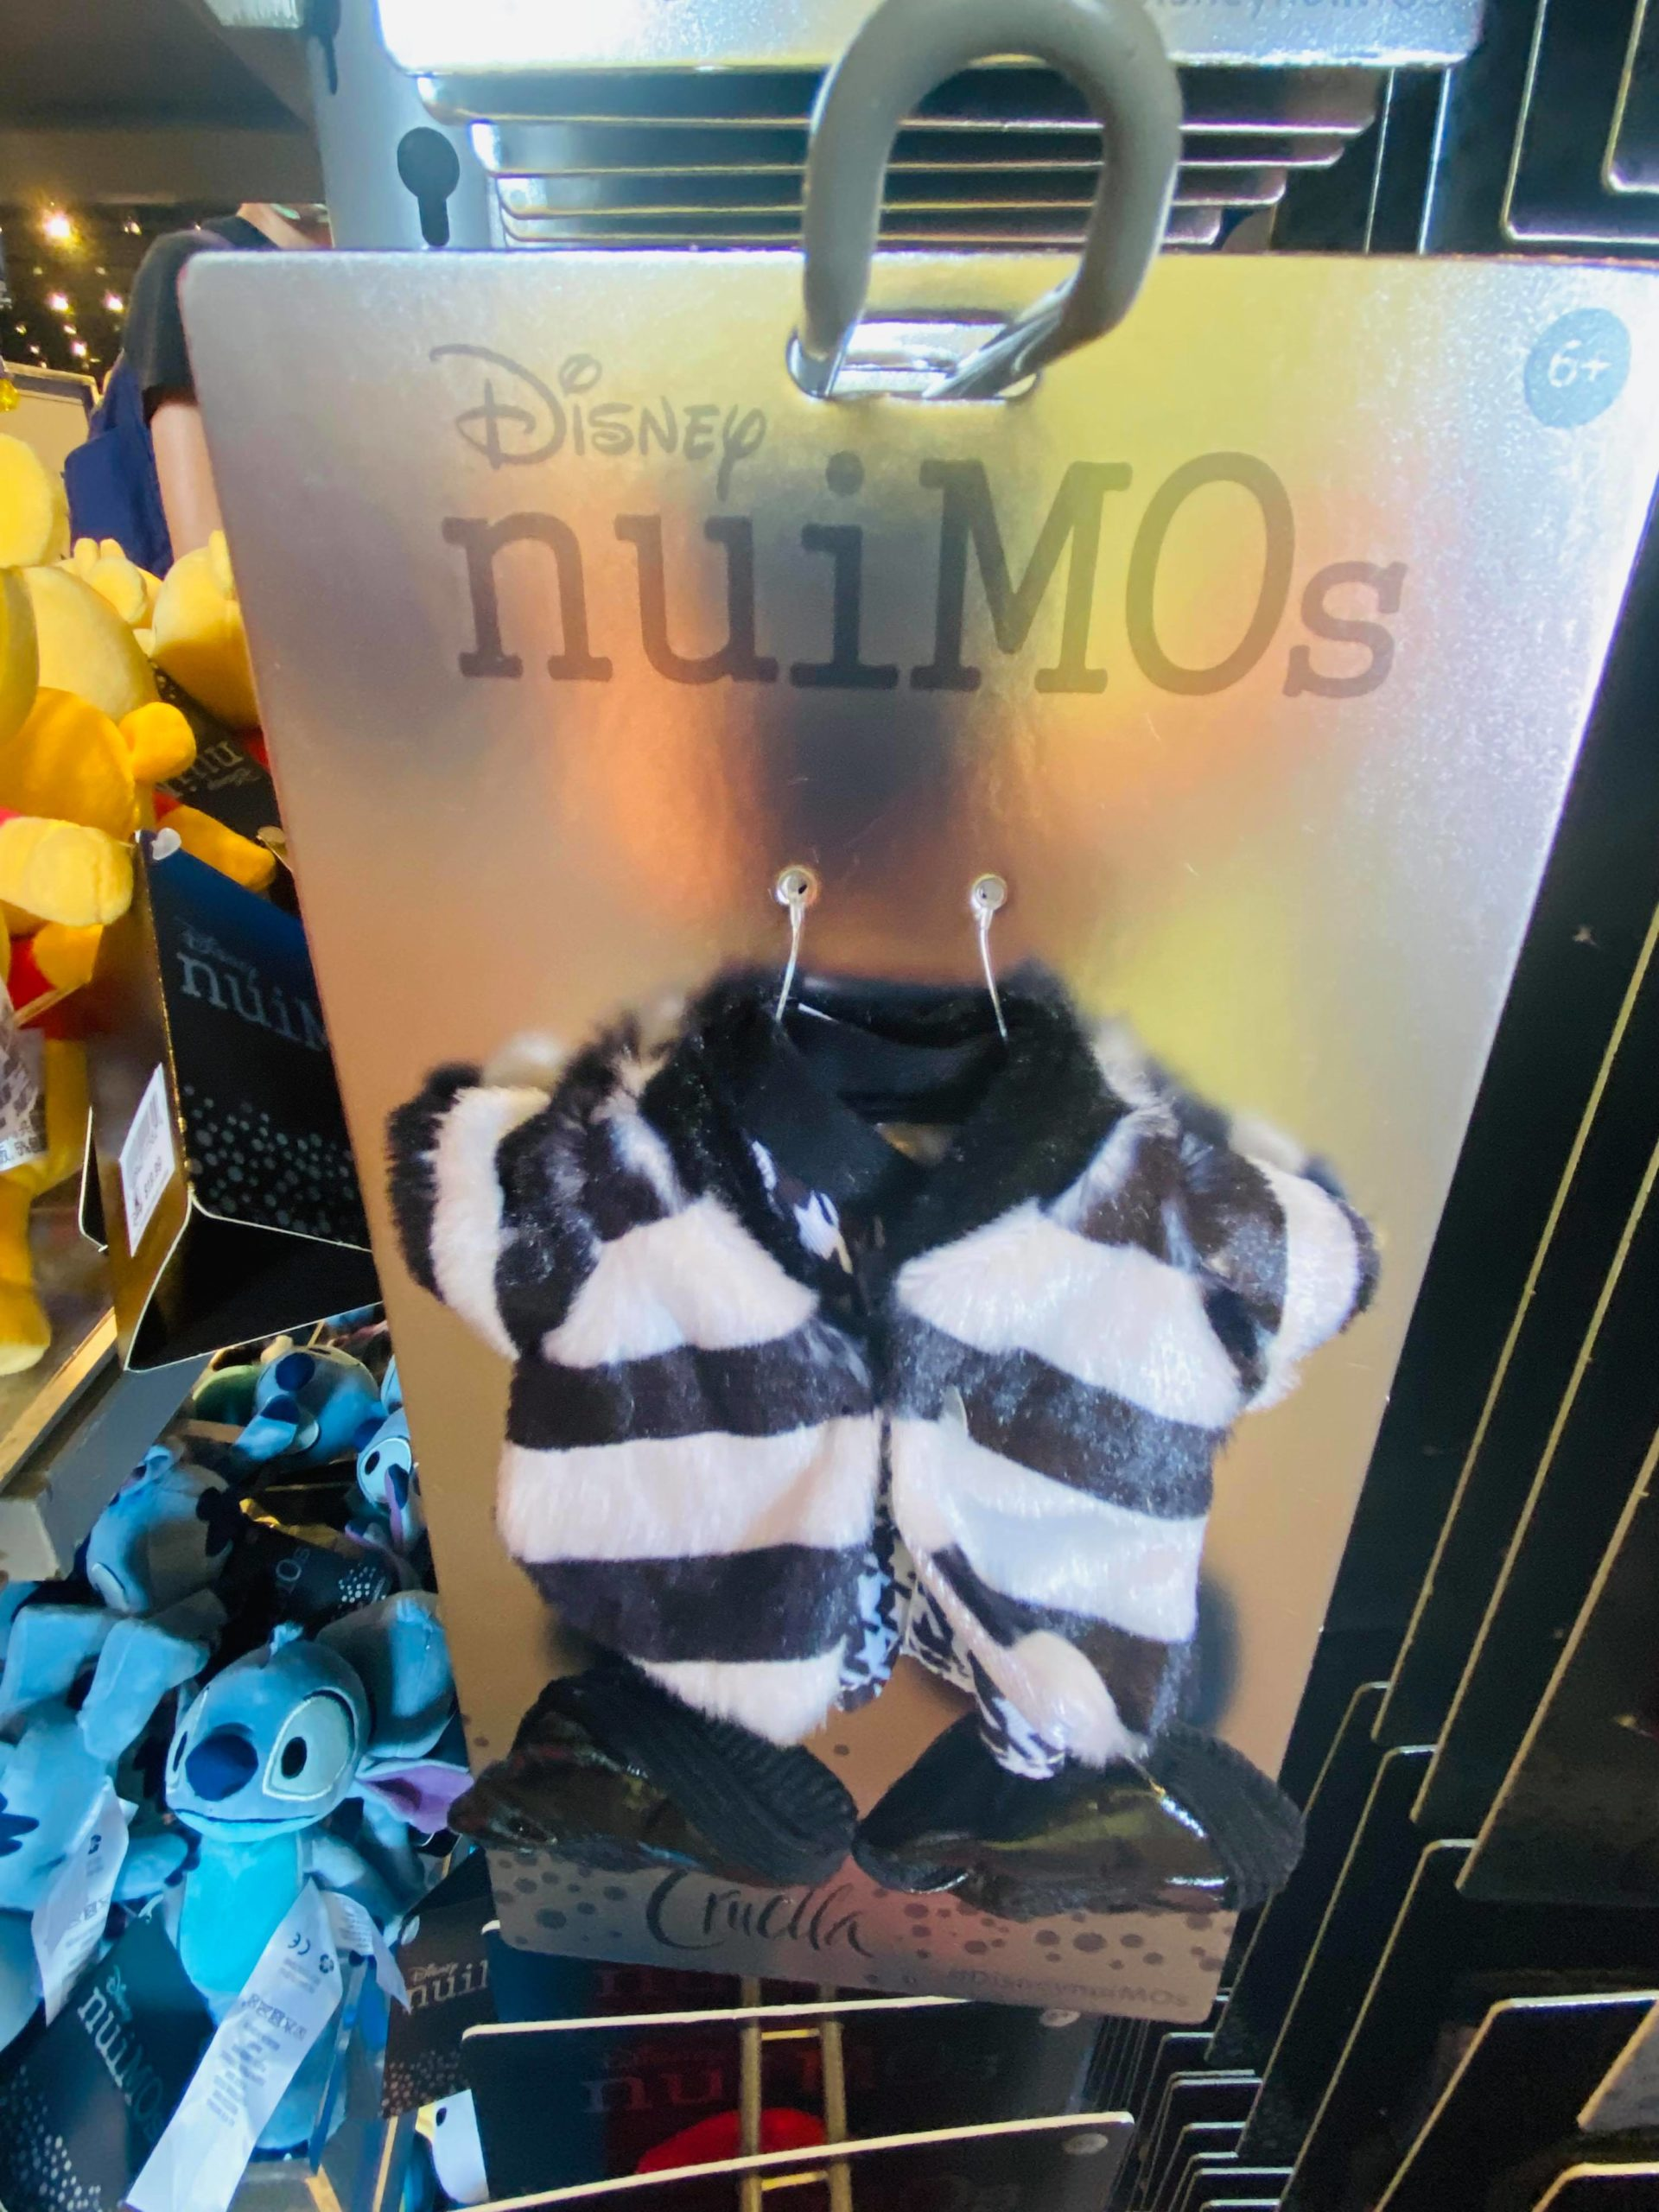 Cruella nuiMOs outfits at Mouse Gear